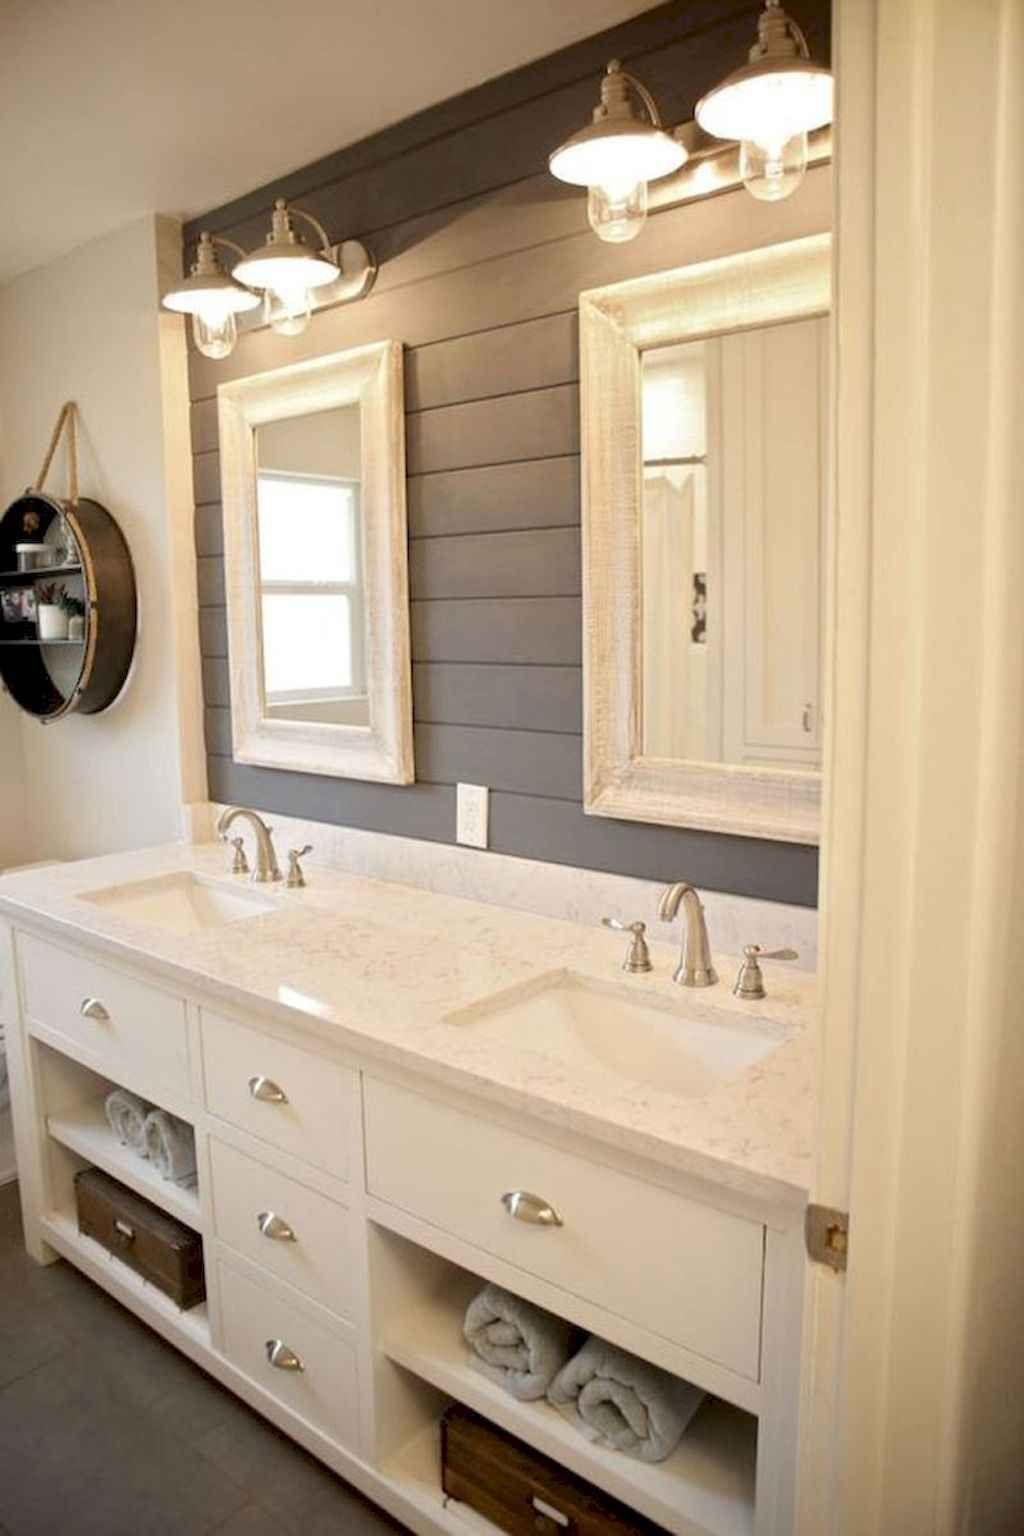 rustic farmhouse master bathroom remodel ideas 56 with on beautiful farmhouse bathroom shower decor ideas and remodel an extraordinary design id=47202